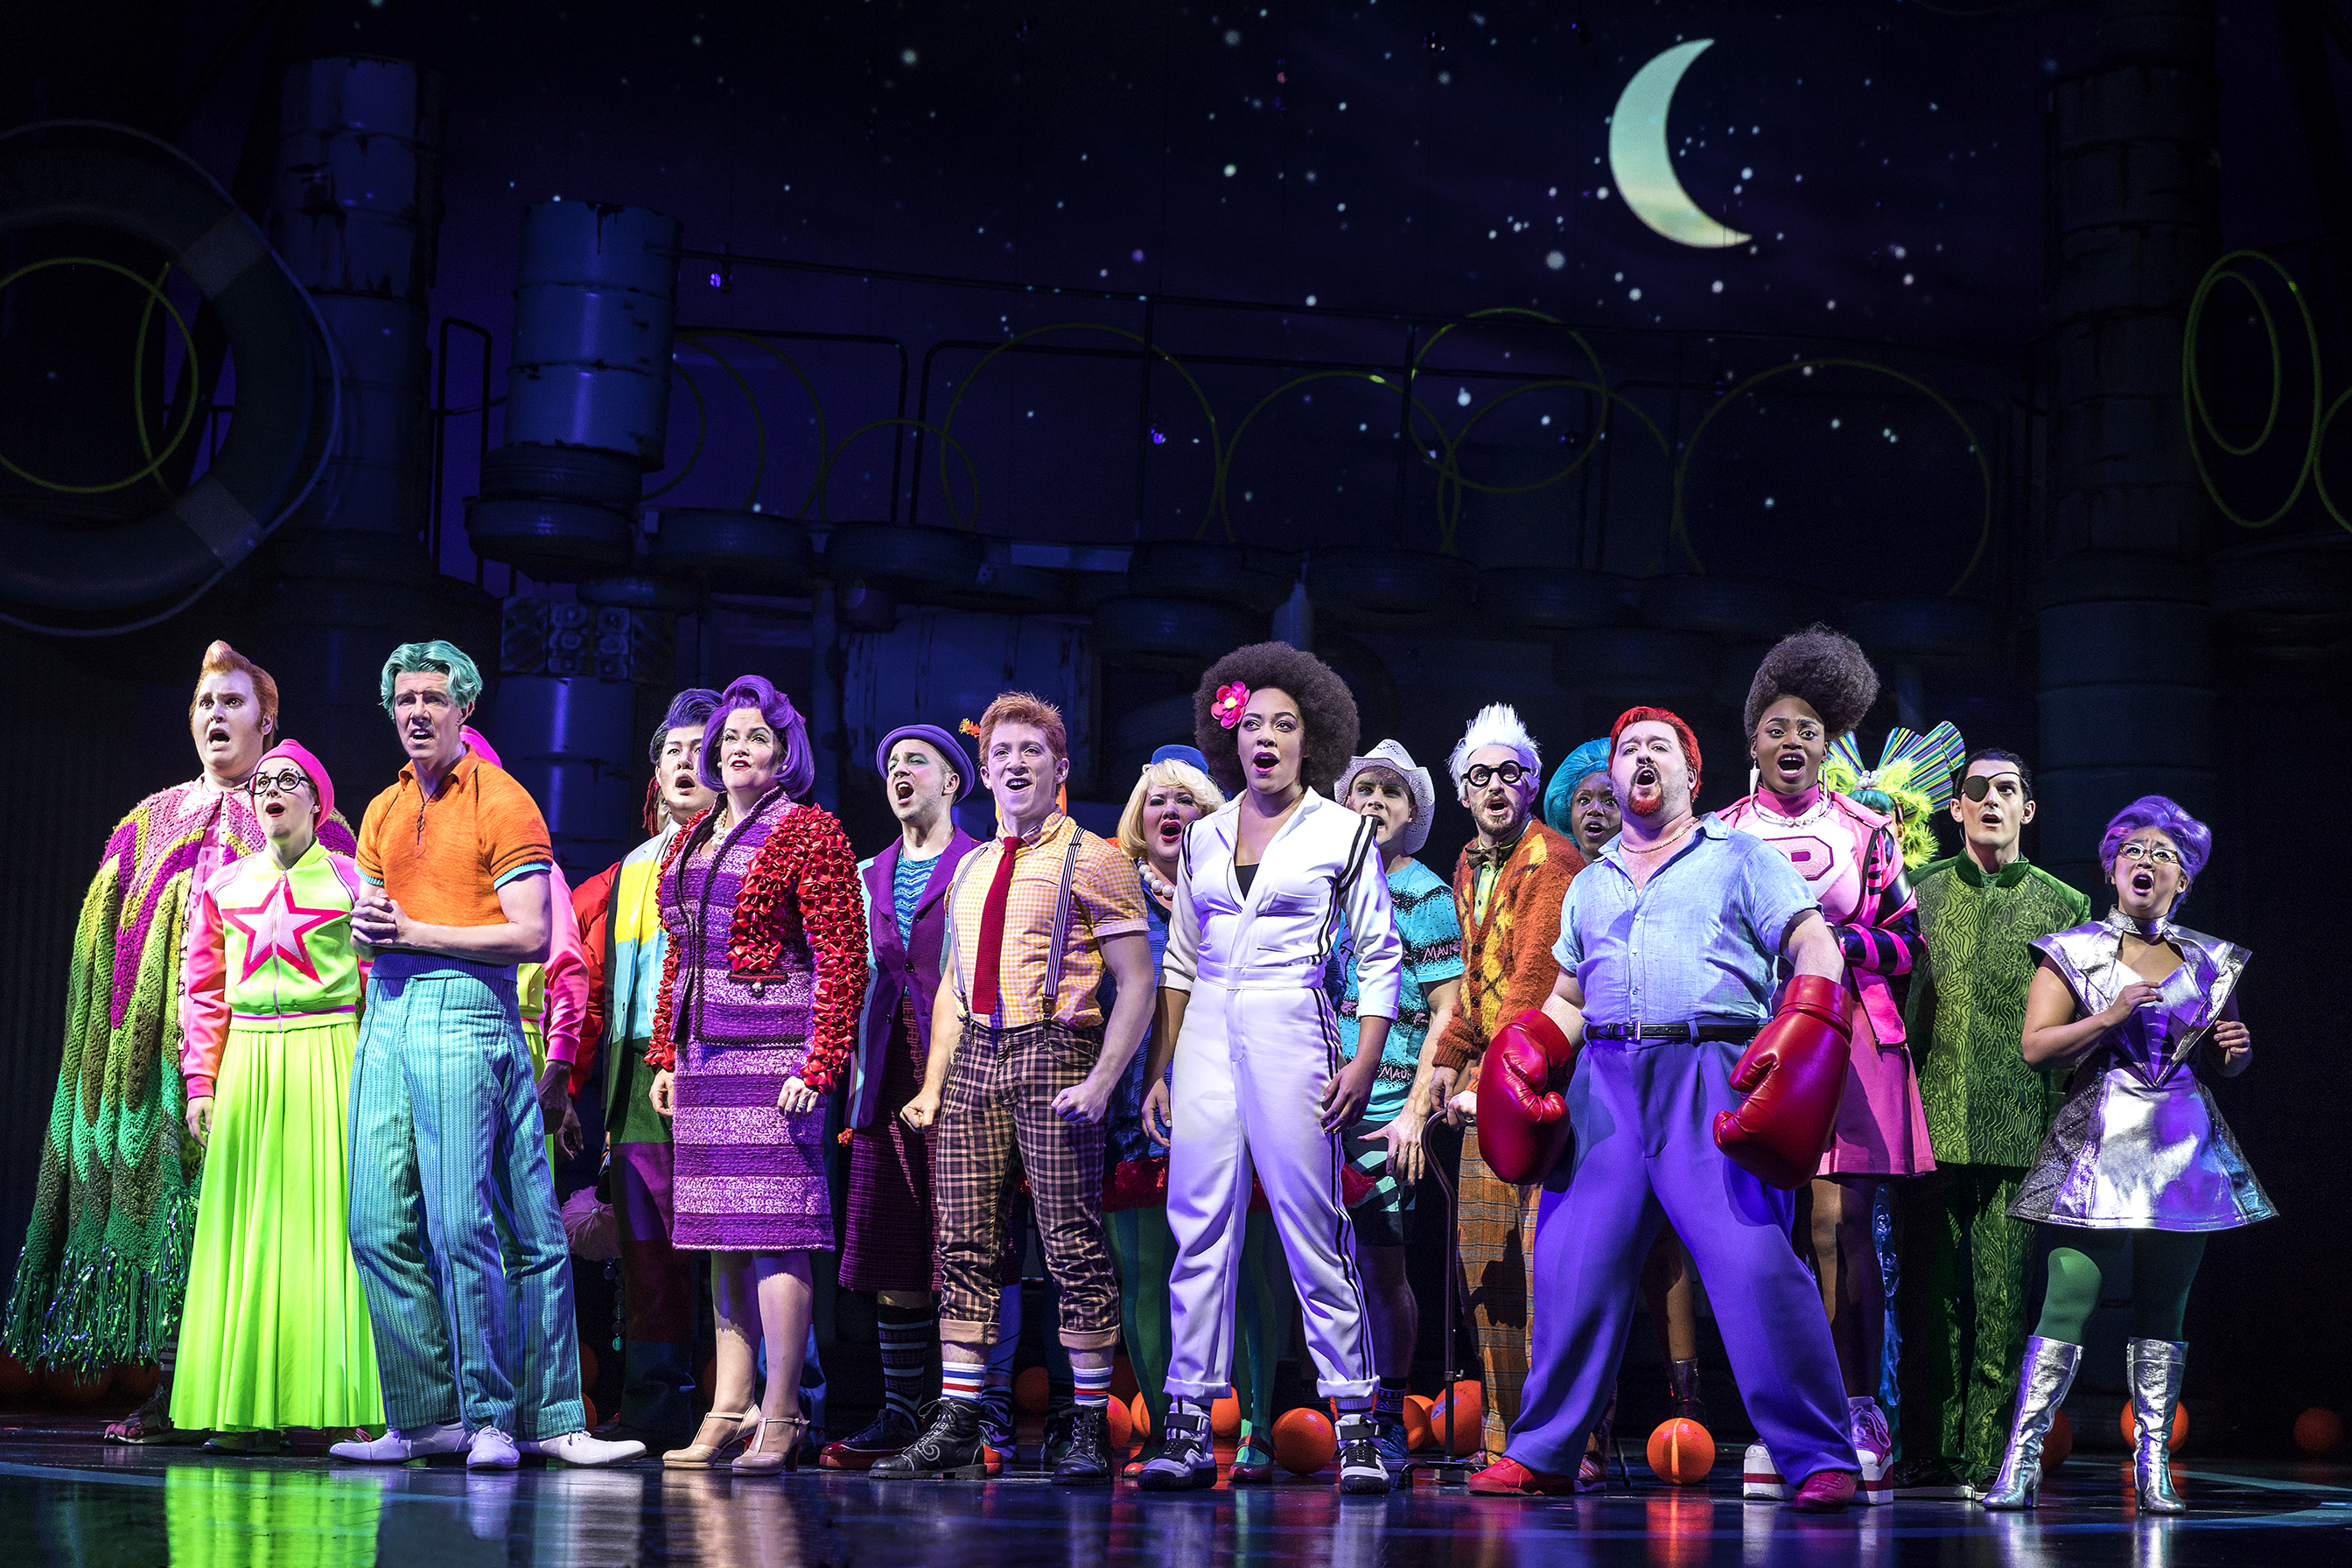 The cast of Spongebob Squarepants the Broadway Musical. Photography by Joan Marcus.